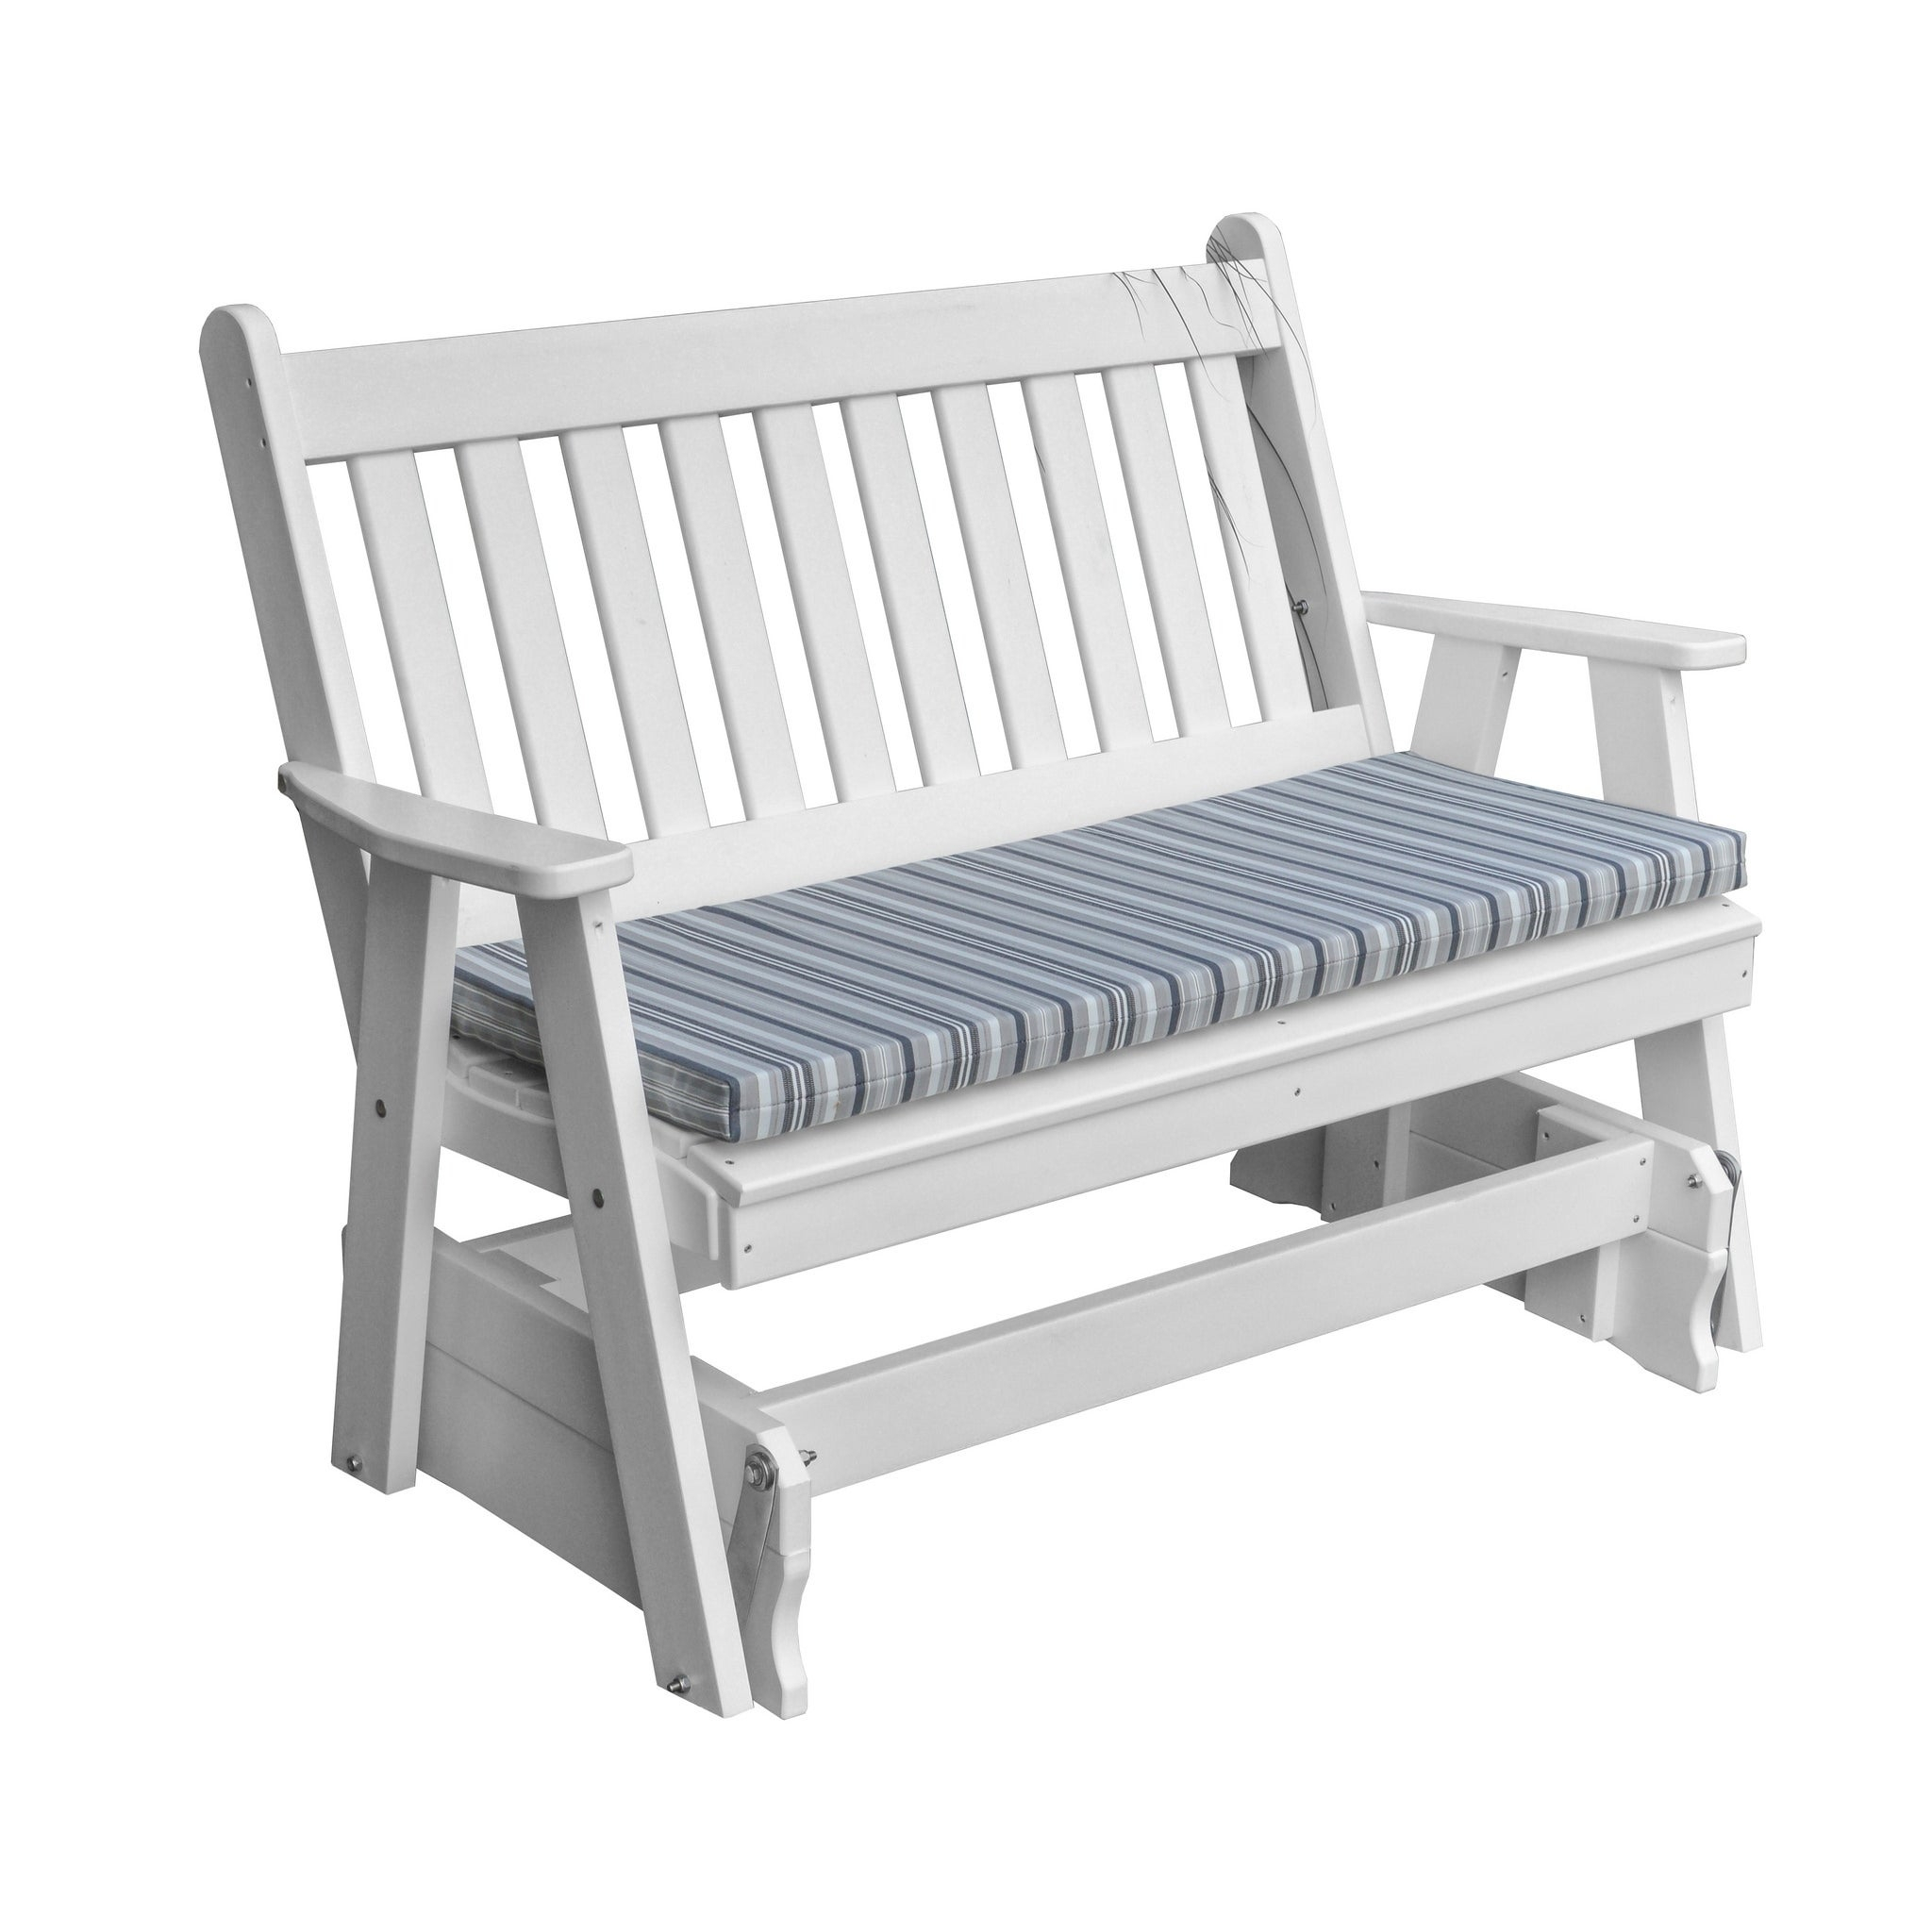 Outdoor 5 Foot Glider In Traditional English Style – Recycled Plastic Within Traditional English Glider Benches (View 6 of 25)